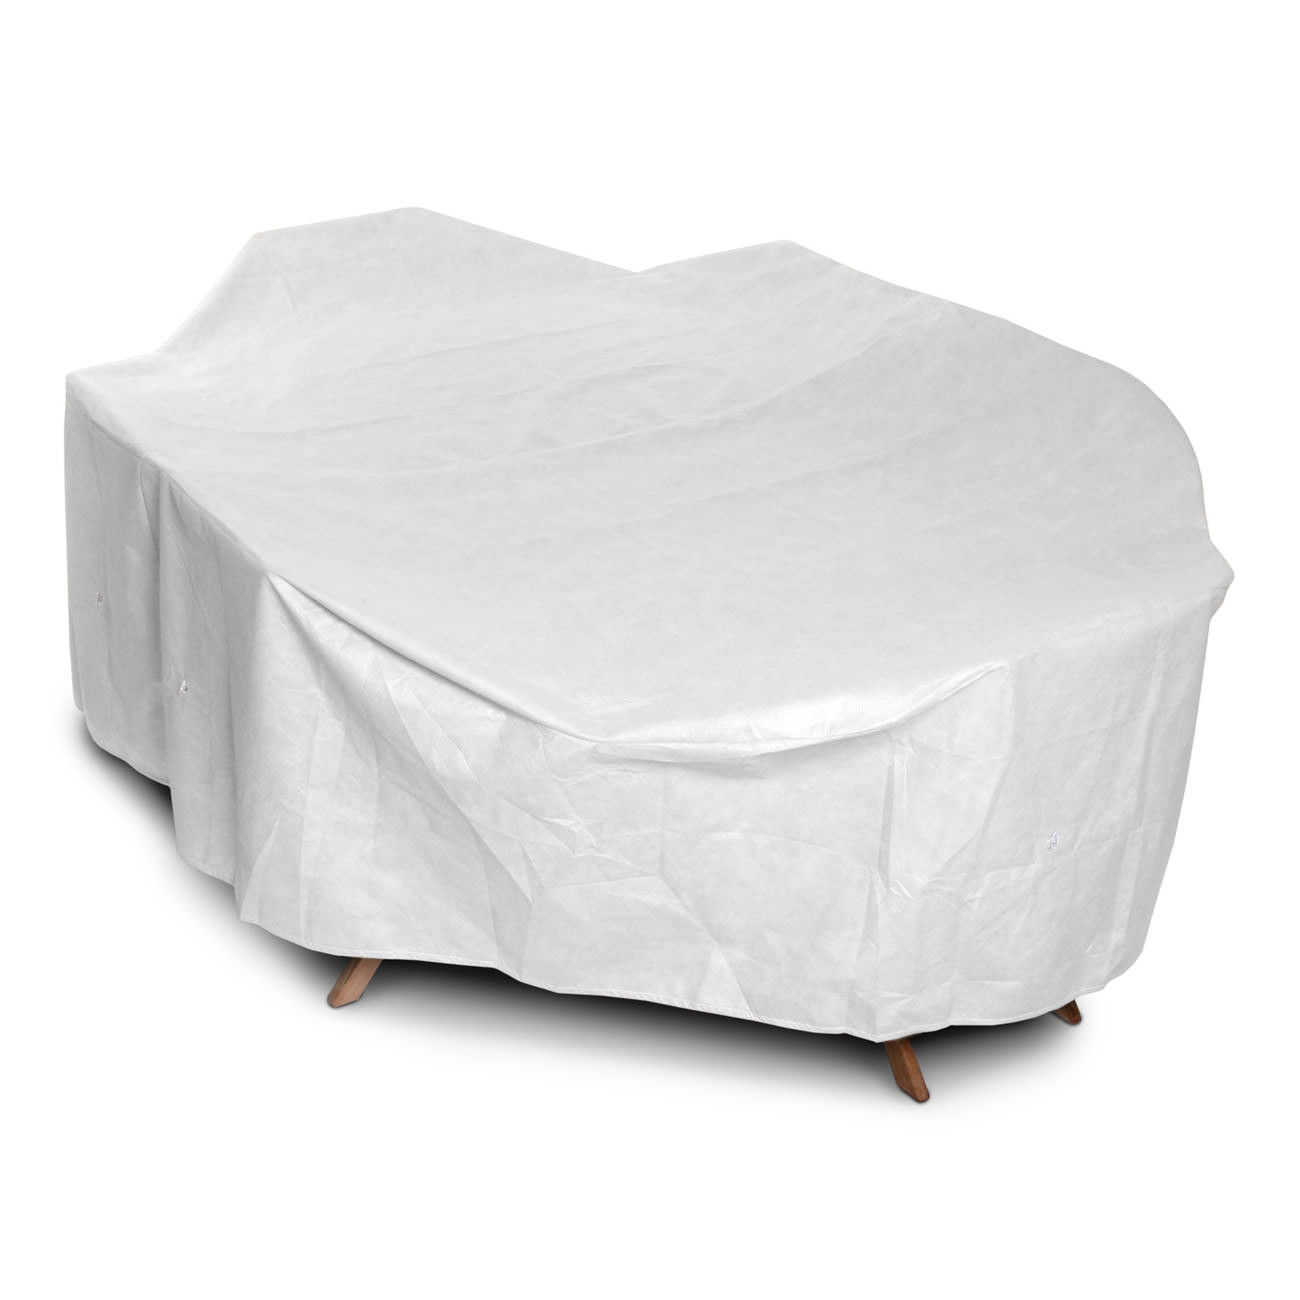 KoverRoos Tyvek Oval/Rectangle Dining Set Cover